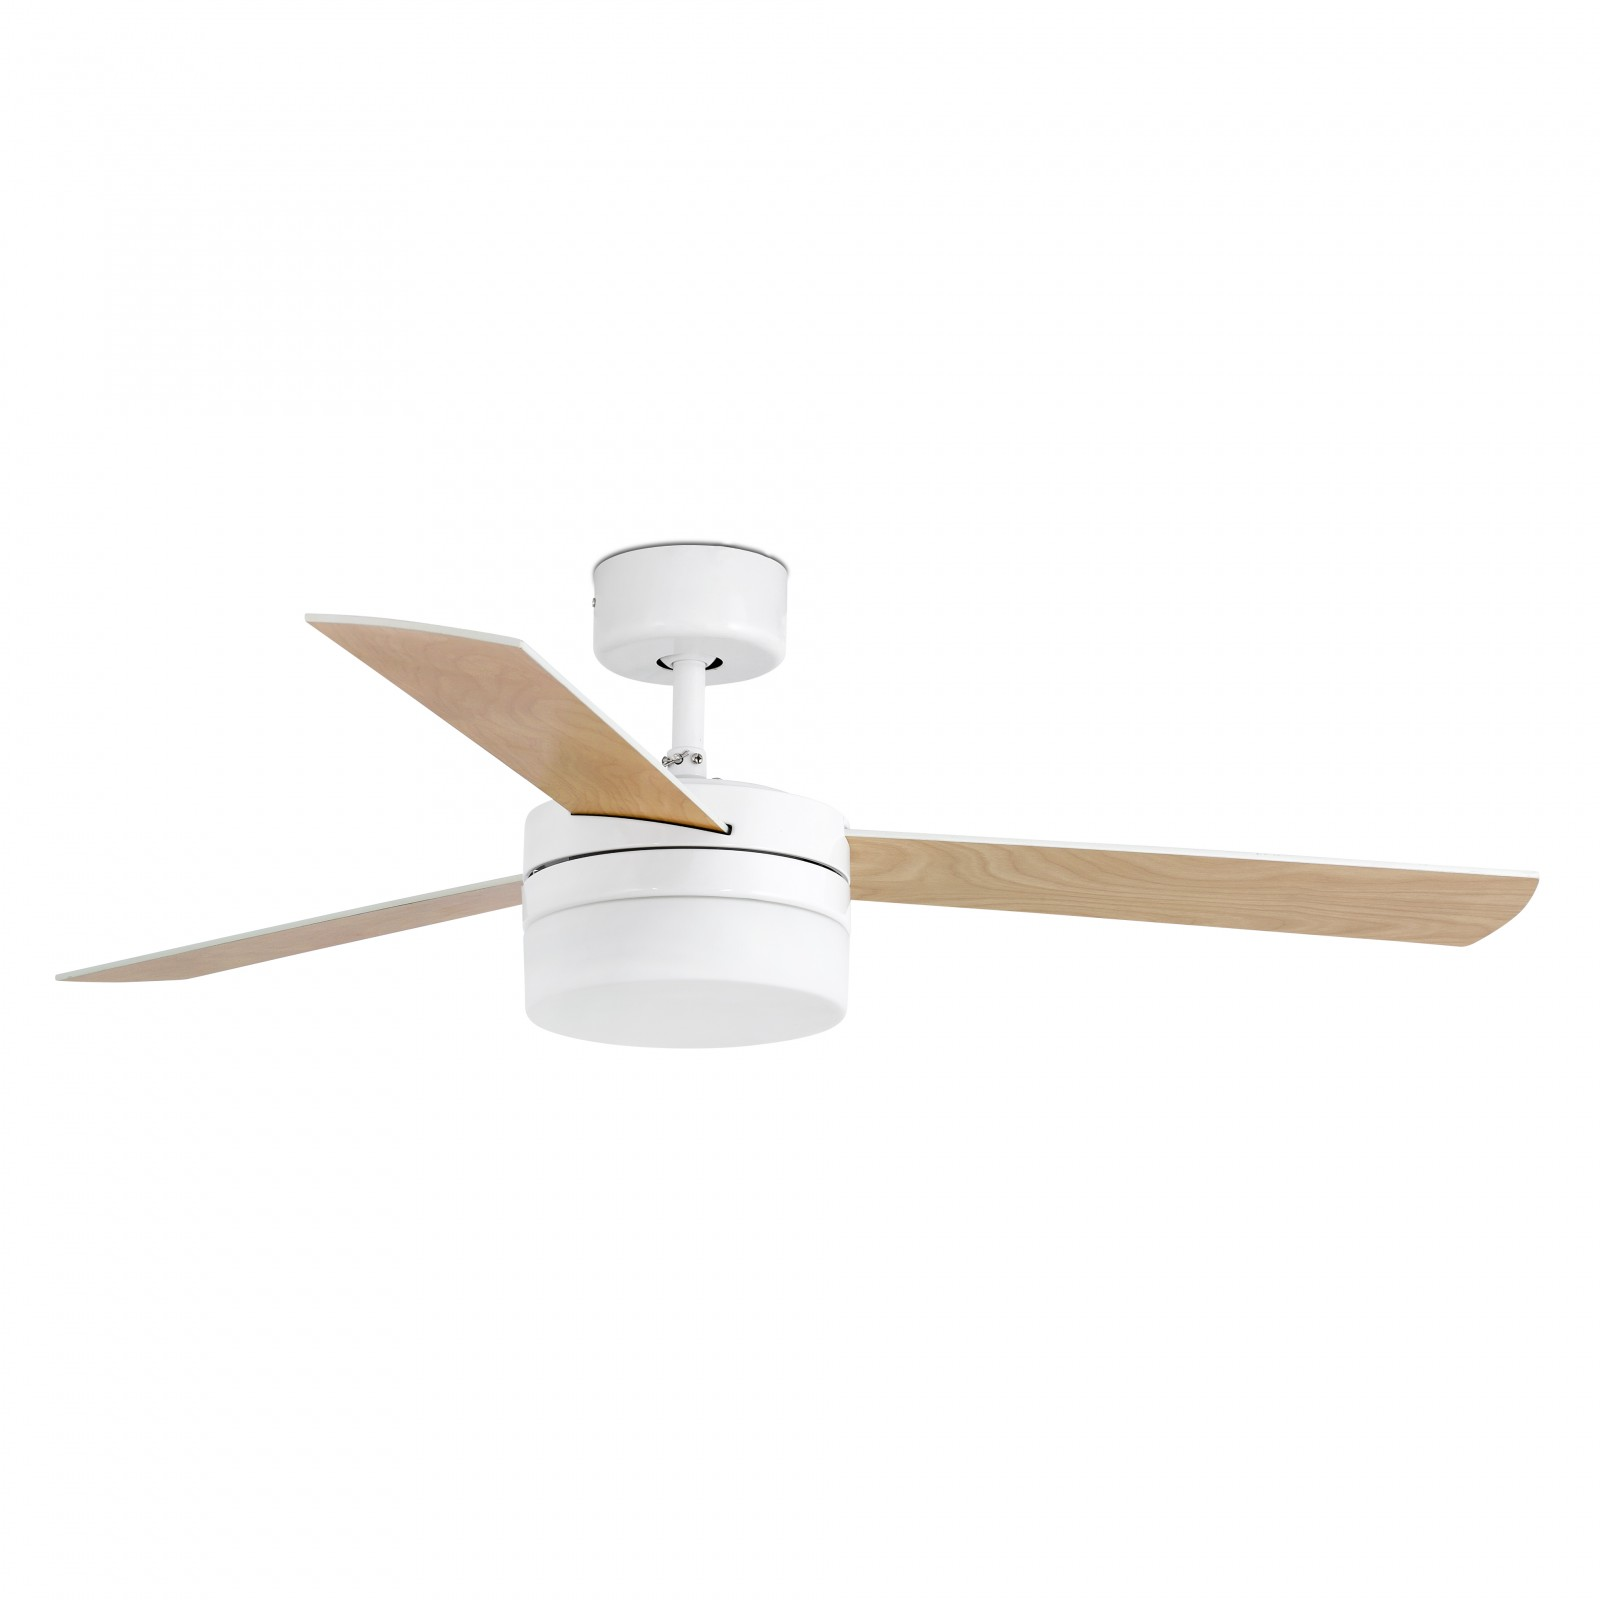 Faro Ceiling Fan Panay White 122 Cm 48 With Lighting